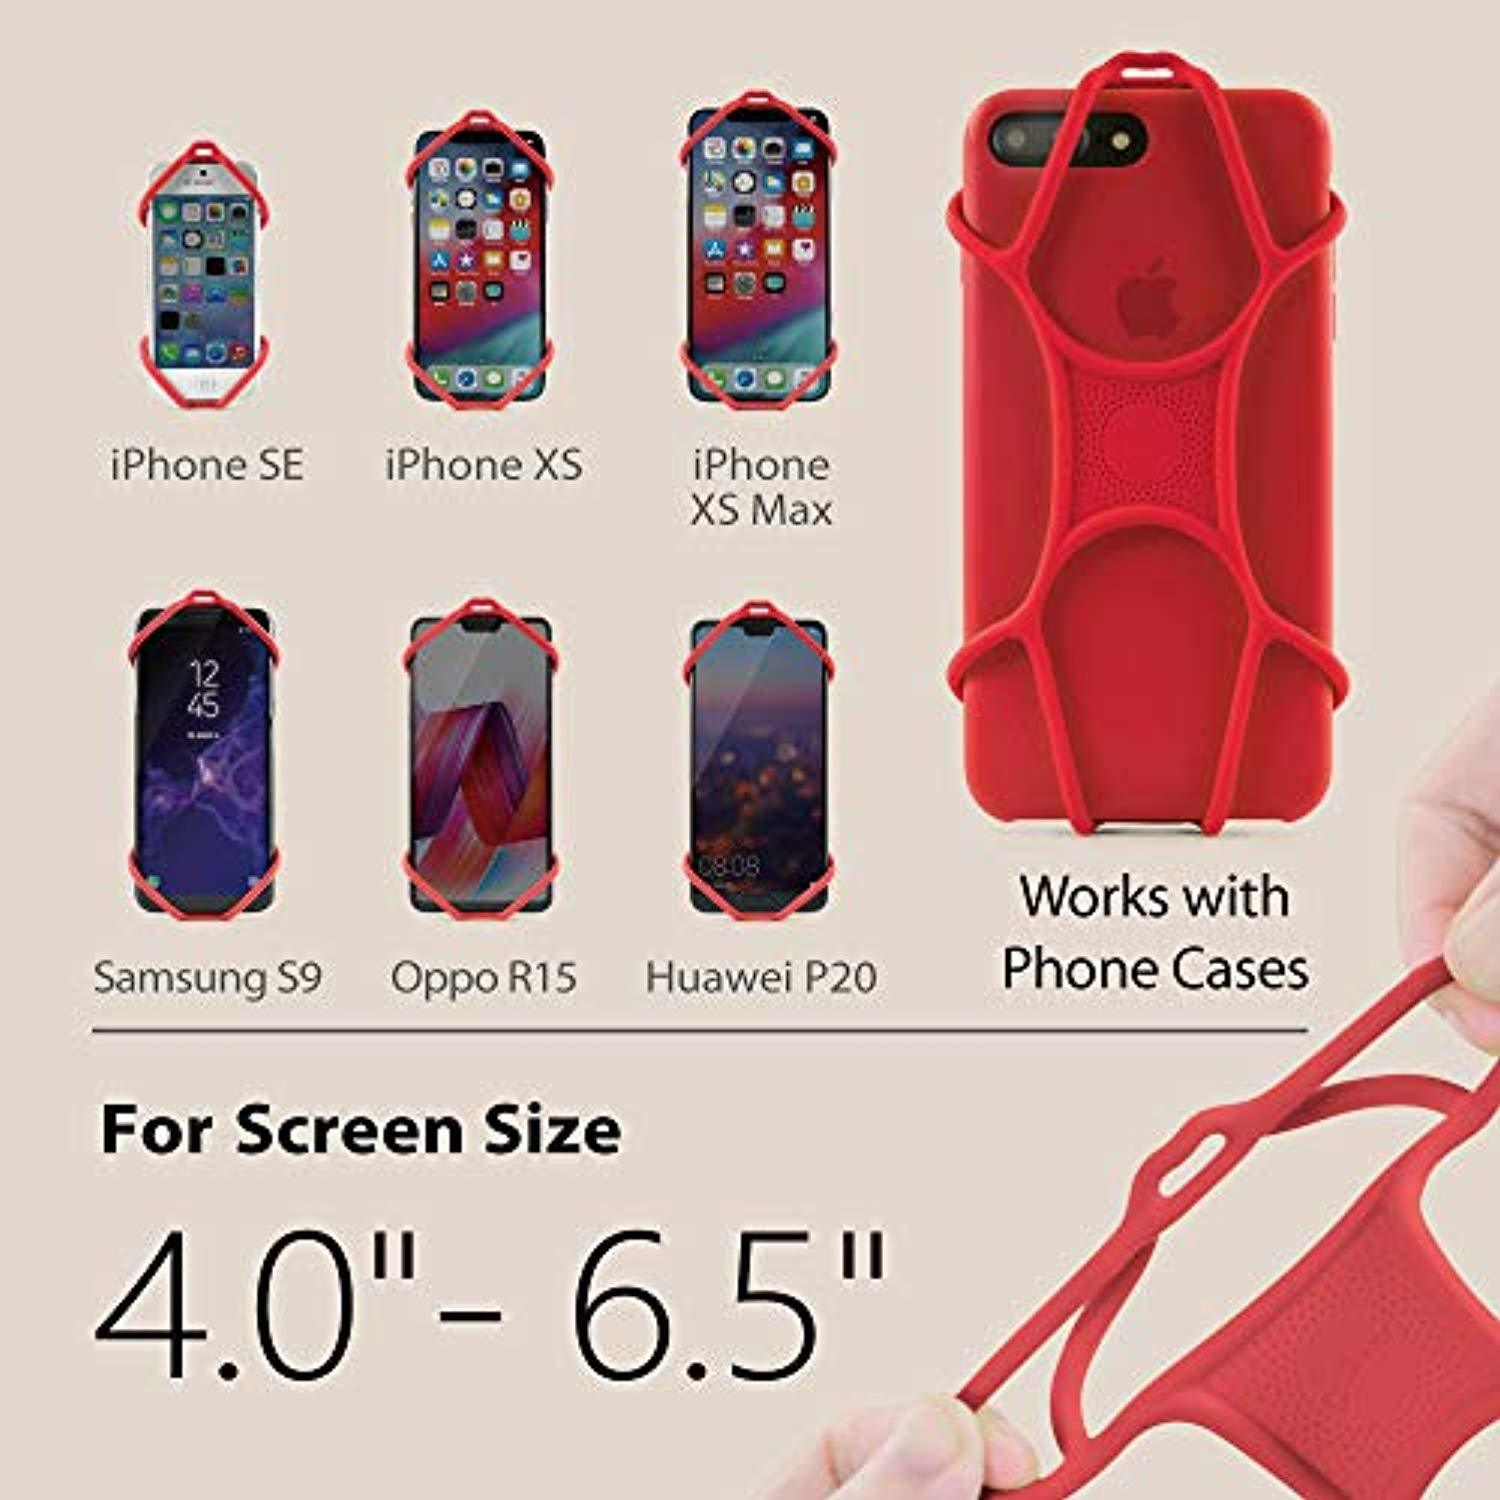 Universal Cell Phone Lanyard Holder, Silicone Neck Strap Smartphone Case  for iPhone Xs Max XR X 8 7 6S Plus Samsung Galaxy S9 S8 Note 9 Pixel 3 XL,